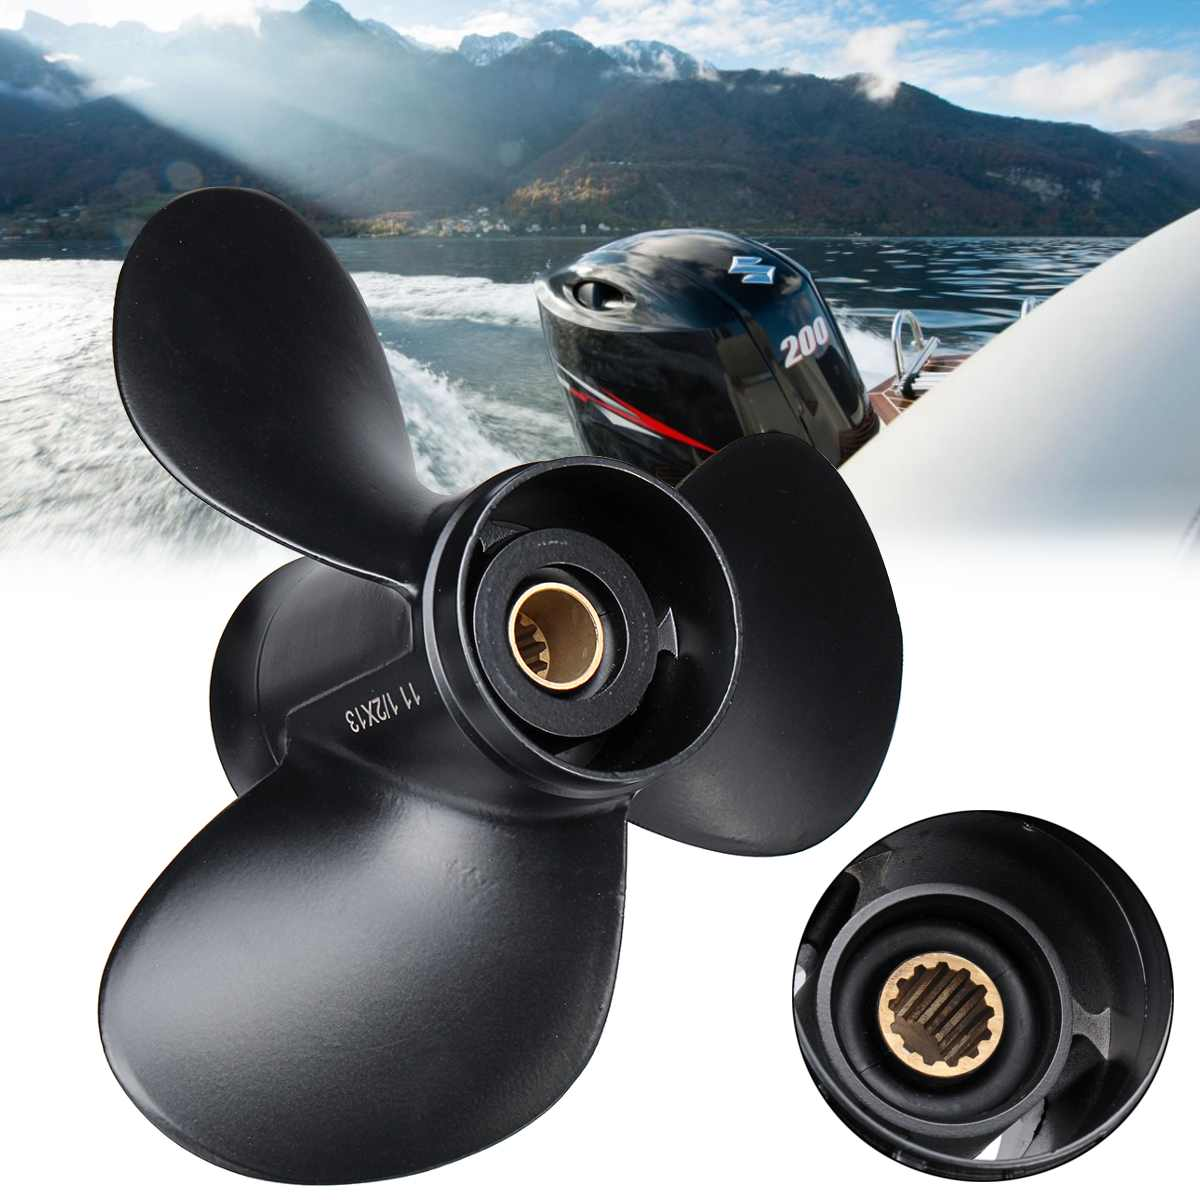 58100-94313-019 11 1/2 x 13 Boat Outboard Propeller Aluminum Alloy For Suzuki 35-65HP Black 3 Blades 13 Spline Tooth R Rotation58100-94313-019 11 1/2 x 13 Boat Outboard Propeller Aluminum Alloy For Suzuki 35-65HP Black 3 Blades 13 Spline Tooth R Rotation